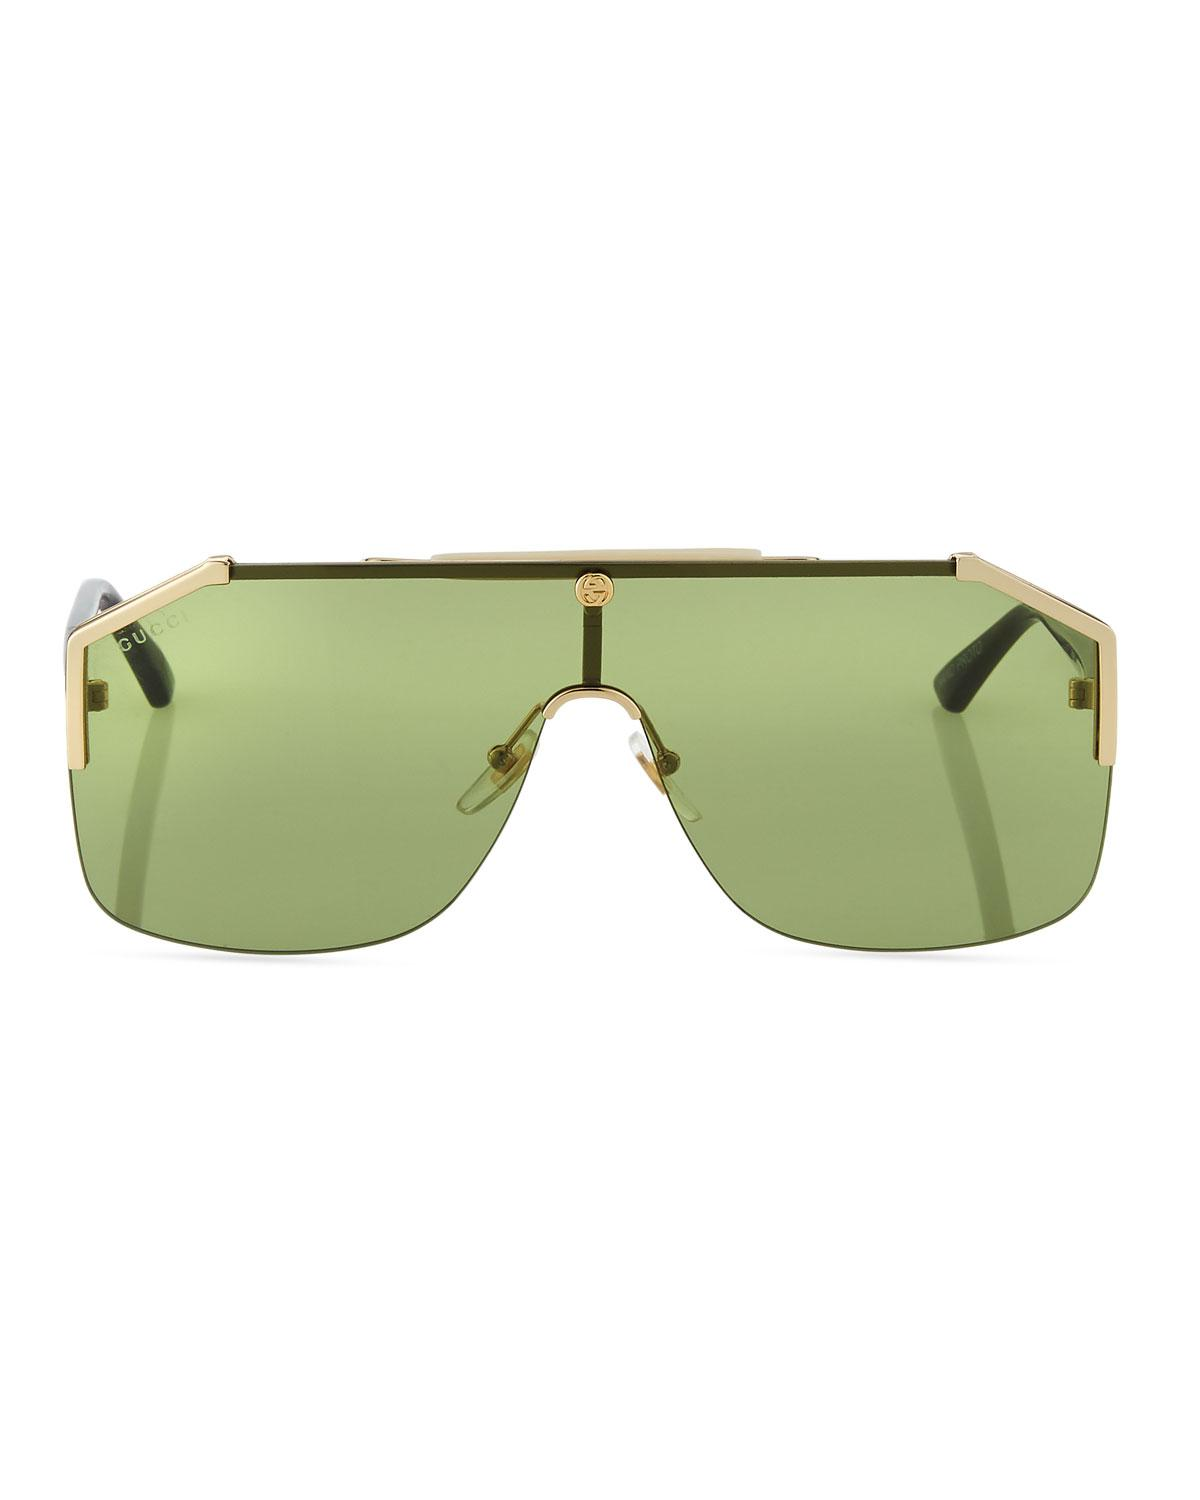 4b6dfe7dbb5 Lyst - Gucci Geometric Metal Shield Sunglasses for Men